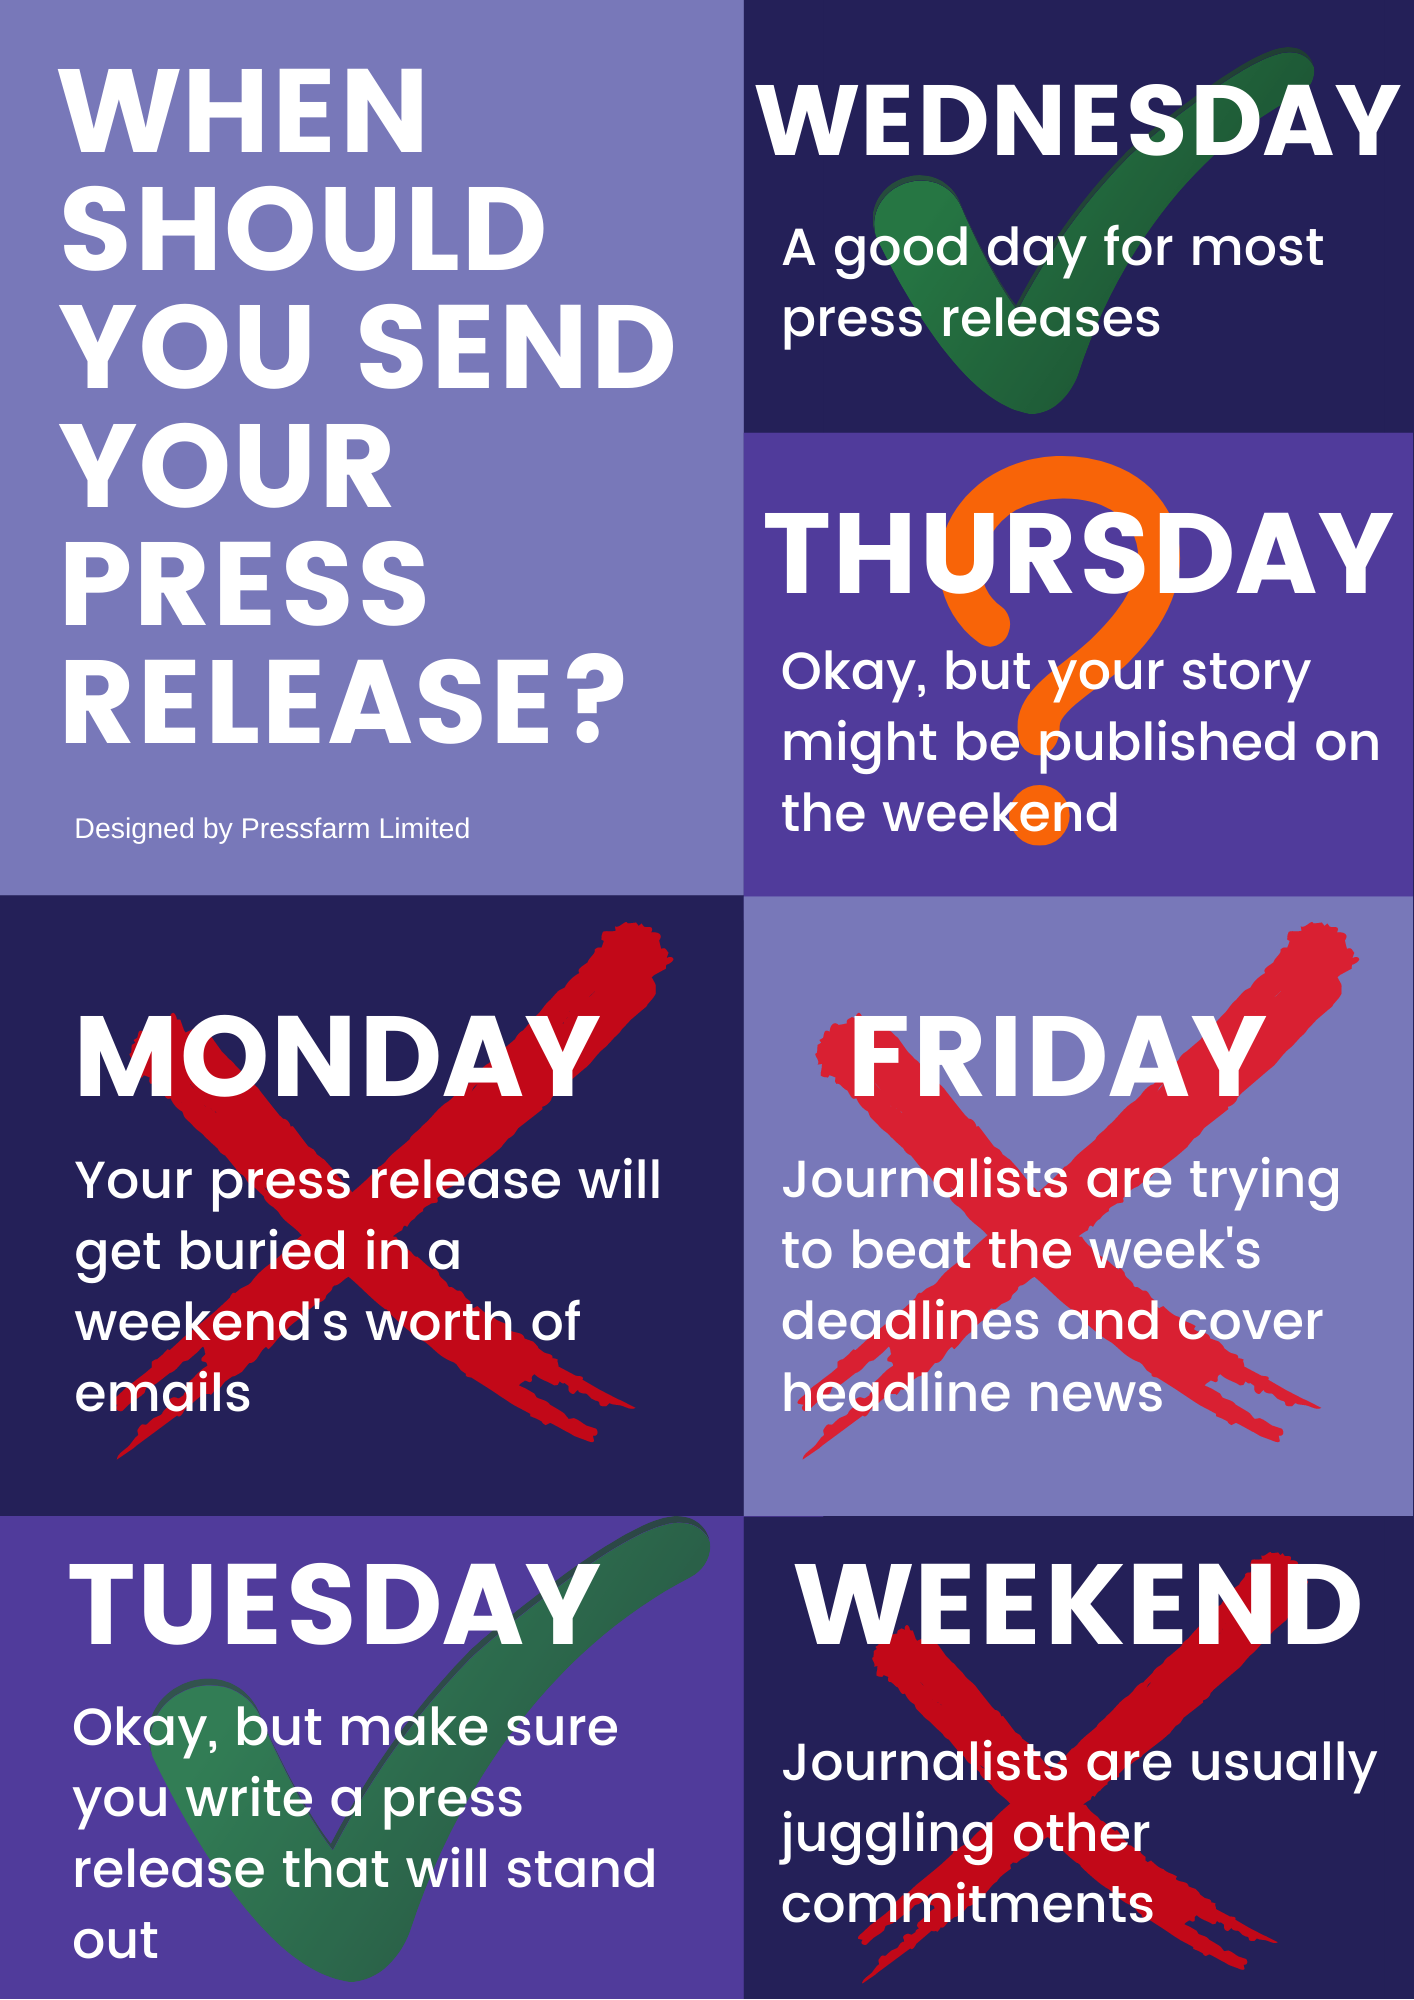 The best day to send a press release